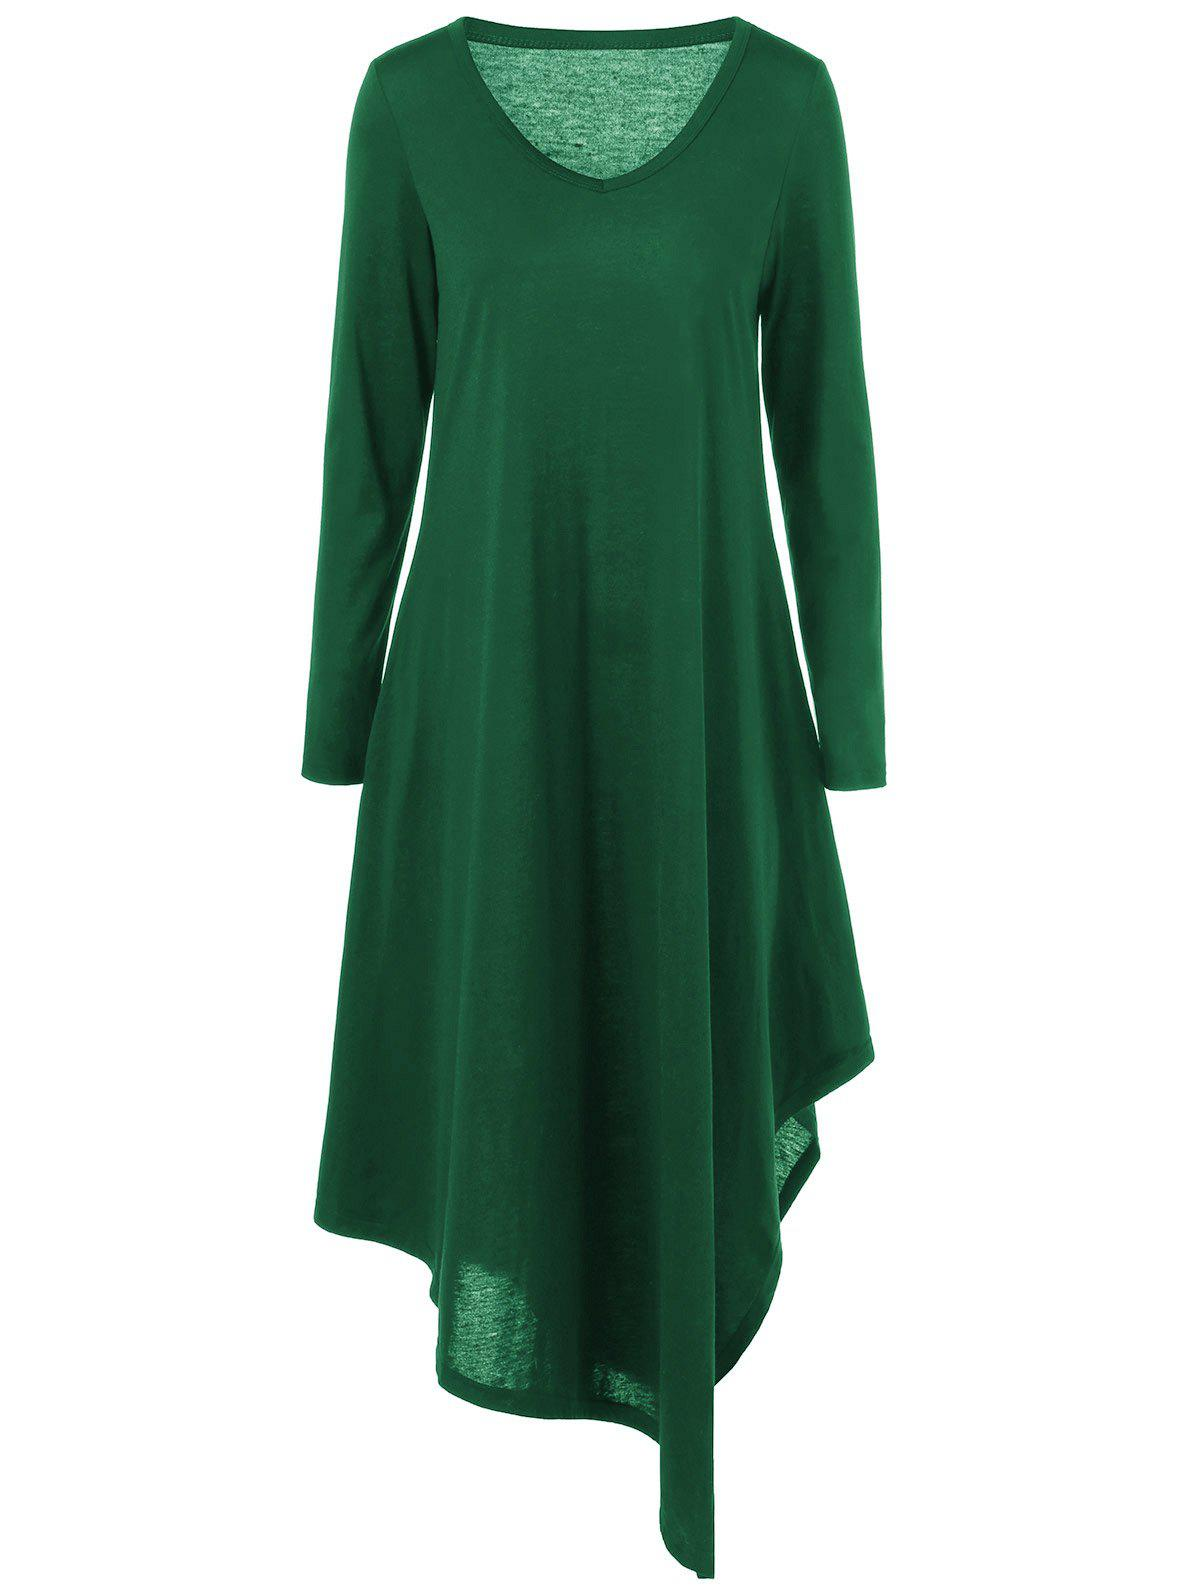 Asymmetrical Long Sleeved Tee Shirt Maxi DressWOMEN<br><br>Size: 2XL; Color: GREEN; Style: Casual; Material: Polyester,Spandex; Silhouette: Asymmetrical; Dresses Length: Ankle-Length; Neckline: V-Neck; Sleeve Length: Long Sleeves; Pattern Type: Solid; With Belt: No; Season: Fall,Spring; Weight: 0.4200kg; Package Contents: 1 x Dress;